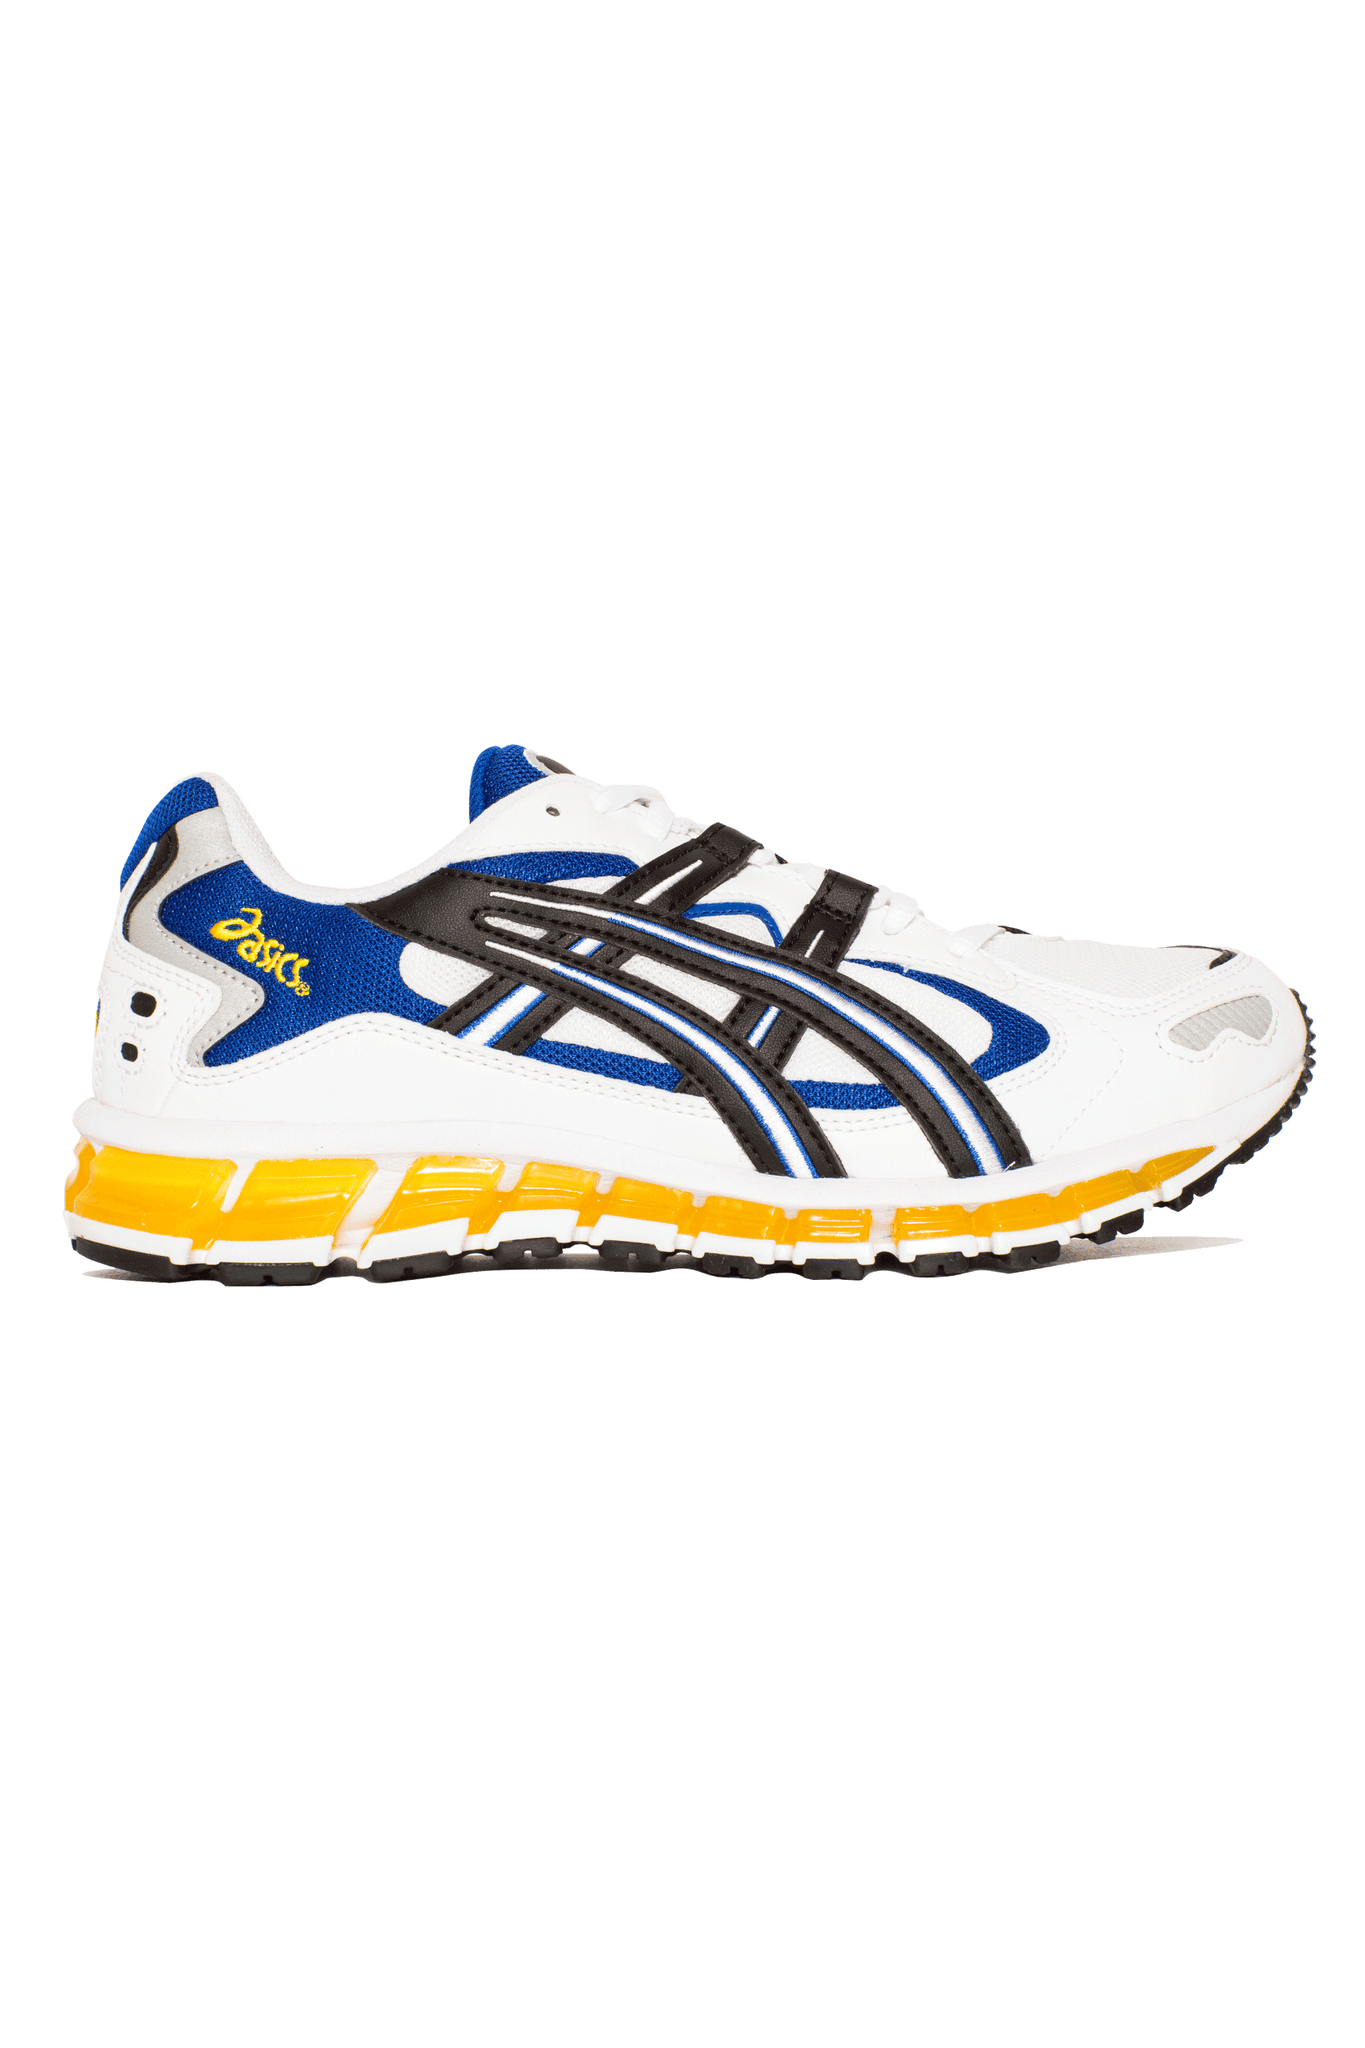 Asics Sneakers Gel Kayano 5 360 Bianco 1021A159#000#100#7,5 - One Block Down